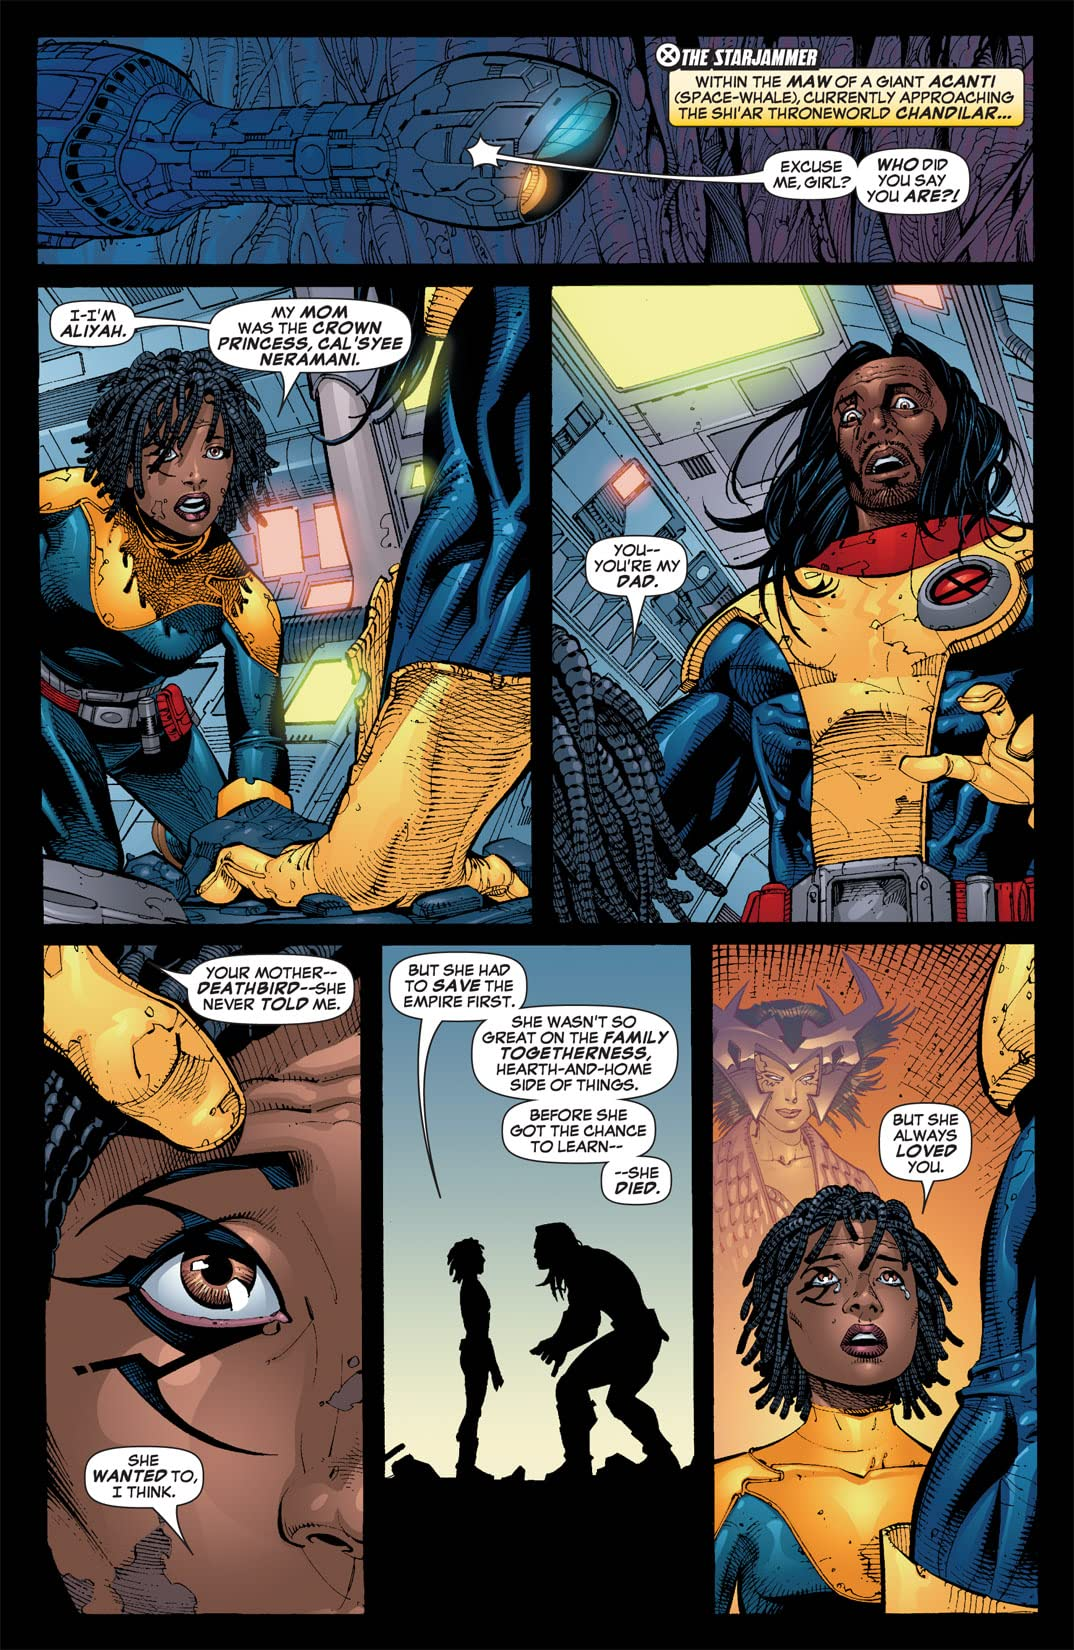 X-Men: The End #5: Men and X-Men